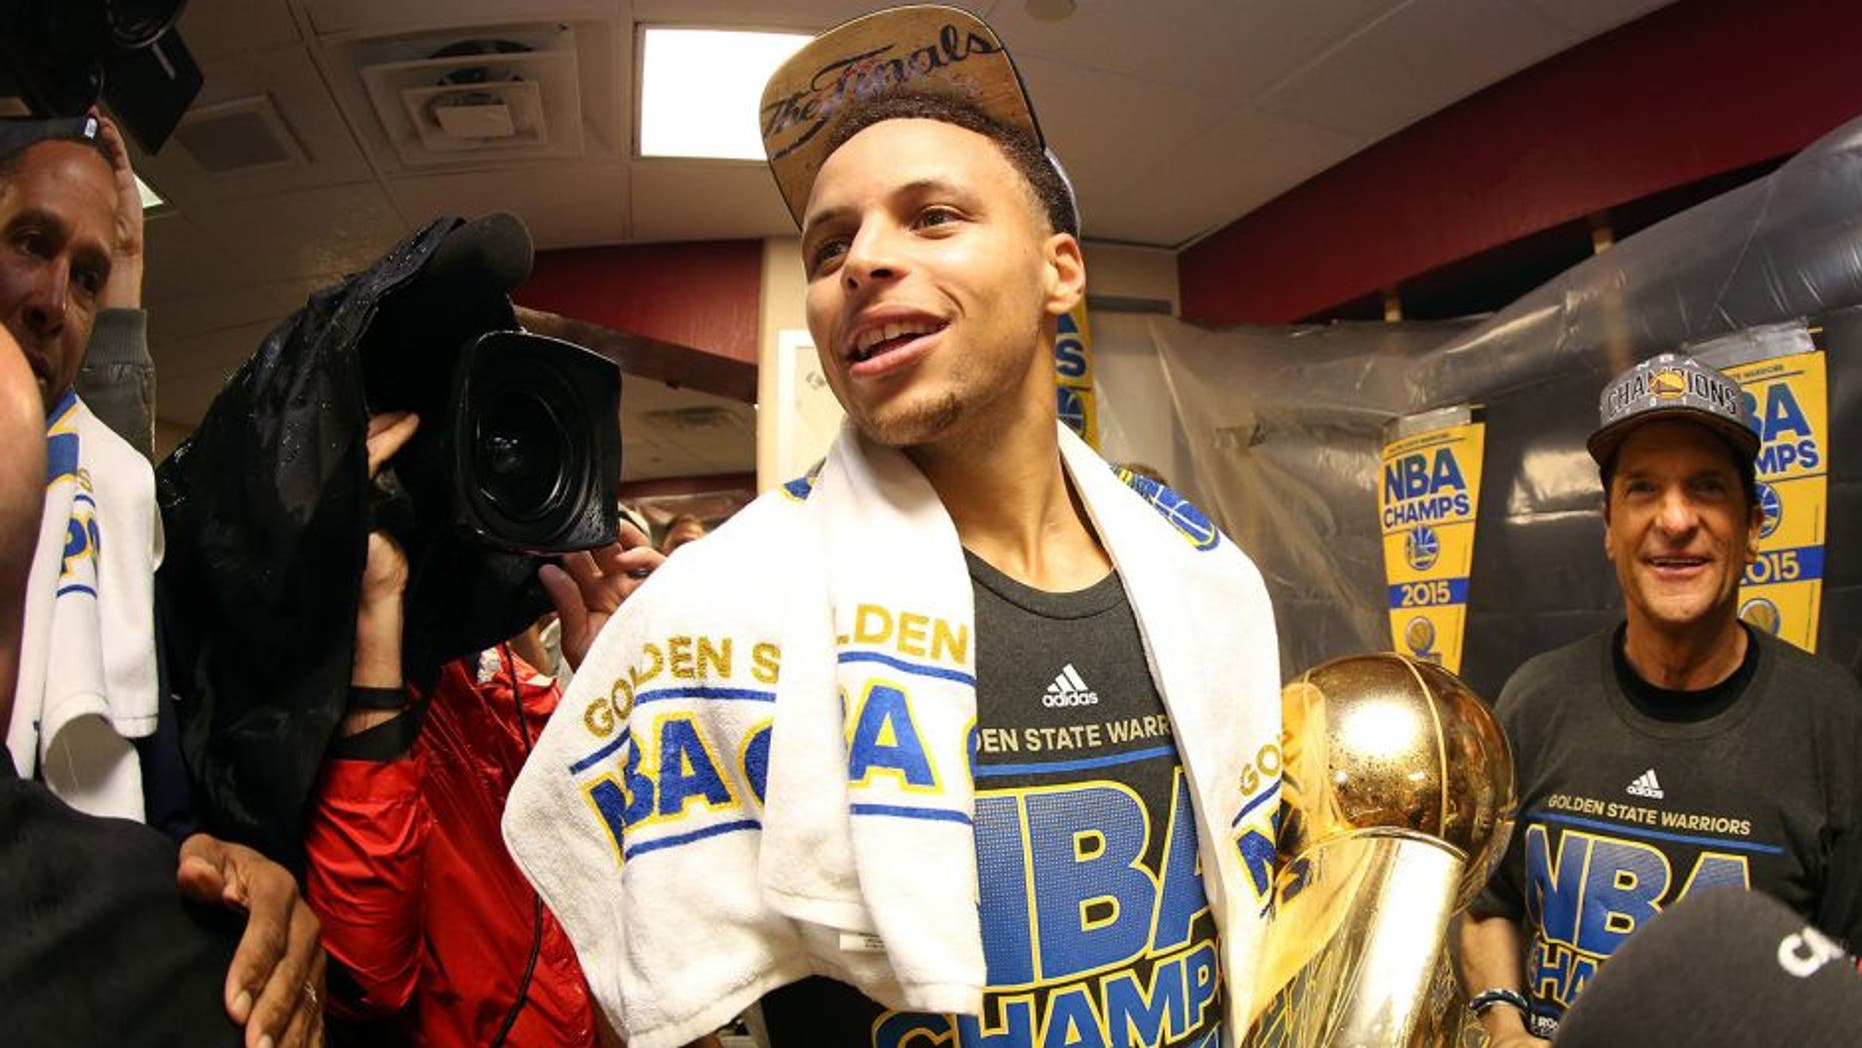 CLEVELAND, OH - JUNE 16: Stephen Curry #30 of the Golden State Warriors celebrates with the Larry O'Brien NBA Championship Trophy in the locker room after they defeated the Cleveland Cavaliers 105 to 97 in Game Six of the 2015 NBA Finals at Quicken Loans Arena on June 16, 2015 in Cleveland, Ohio. NOTE TO USER: User expressly acknowledges and agrees that, by downloading and or using this photograph, user is consenting to the terms and conditions of Getty Images License Agreement. (Photo by Ezra Shaw/Getty Images)